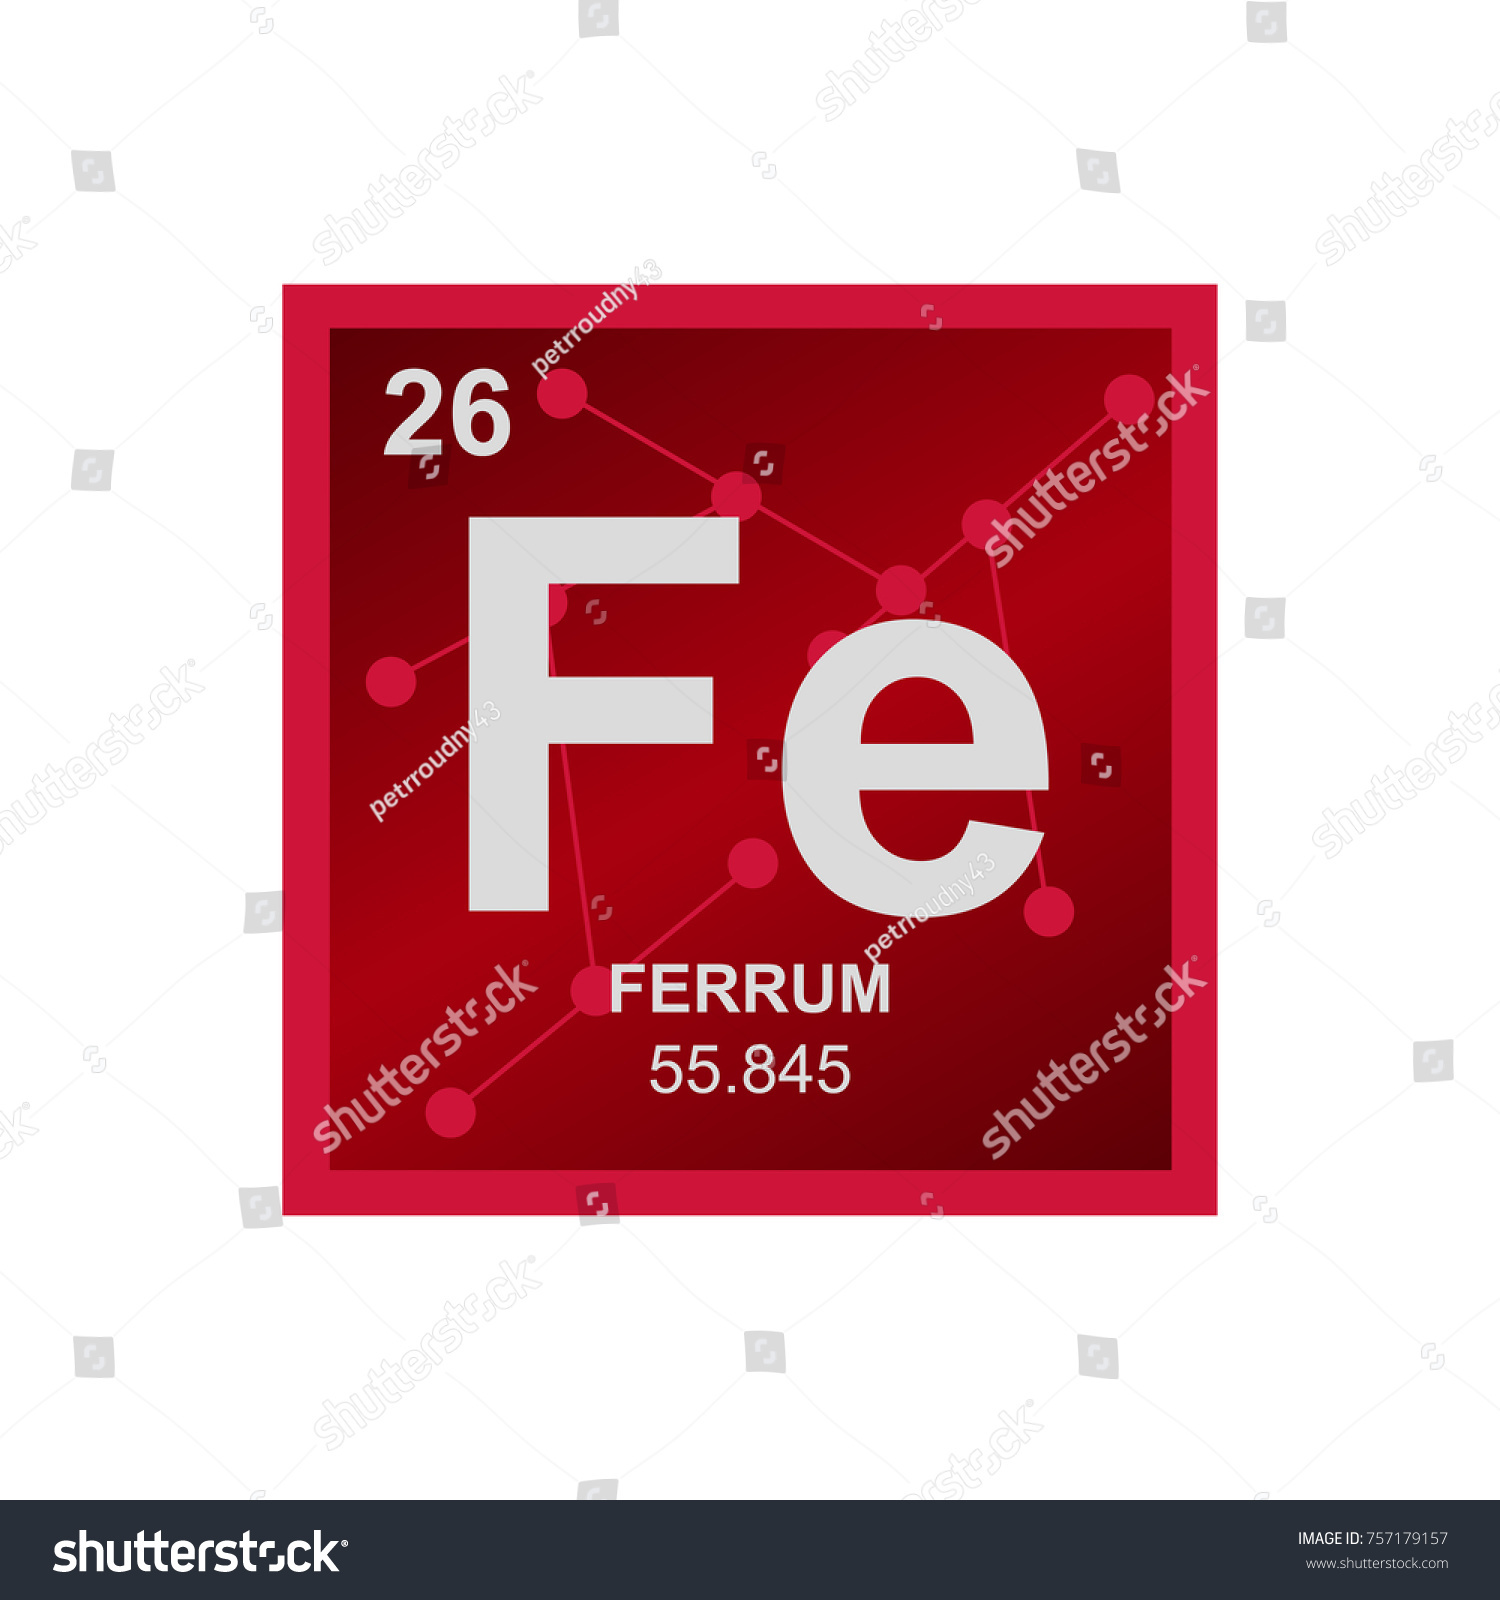 Iron symbol in periodic table image collections periodic table what group is iron in on the periodic table images periodic whats iron on the periodic gamestrikefo Choice Image